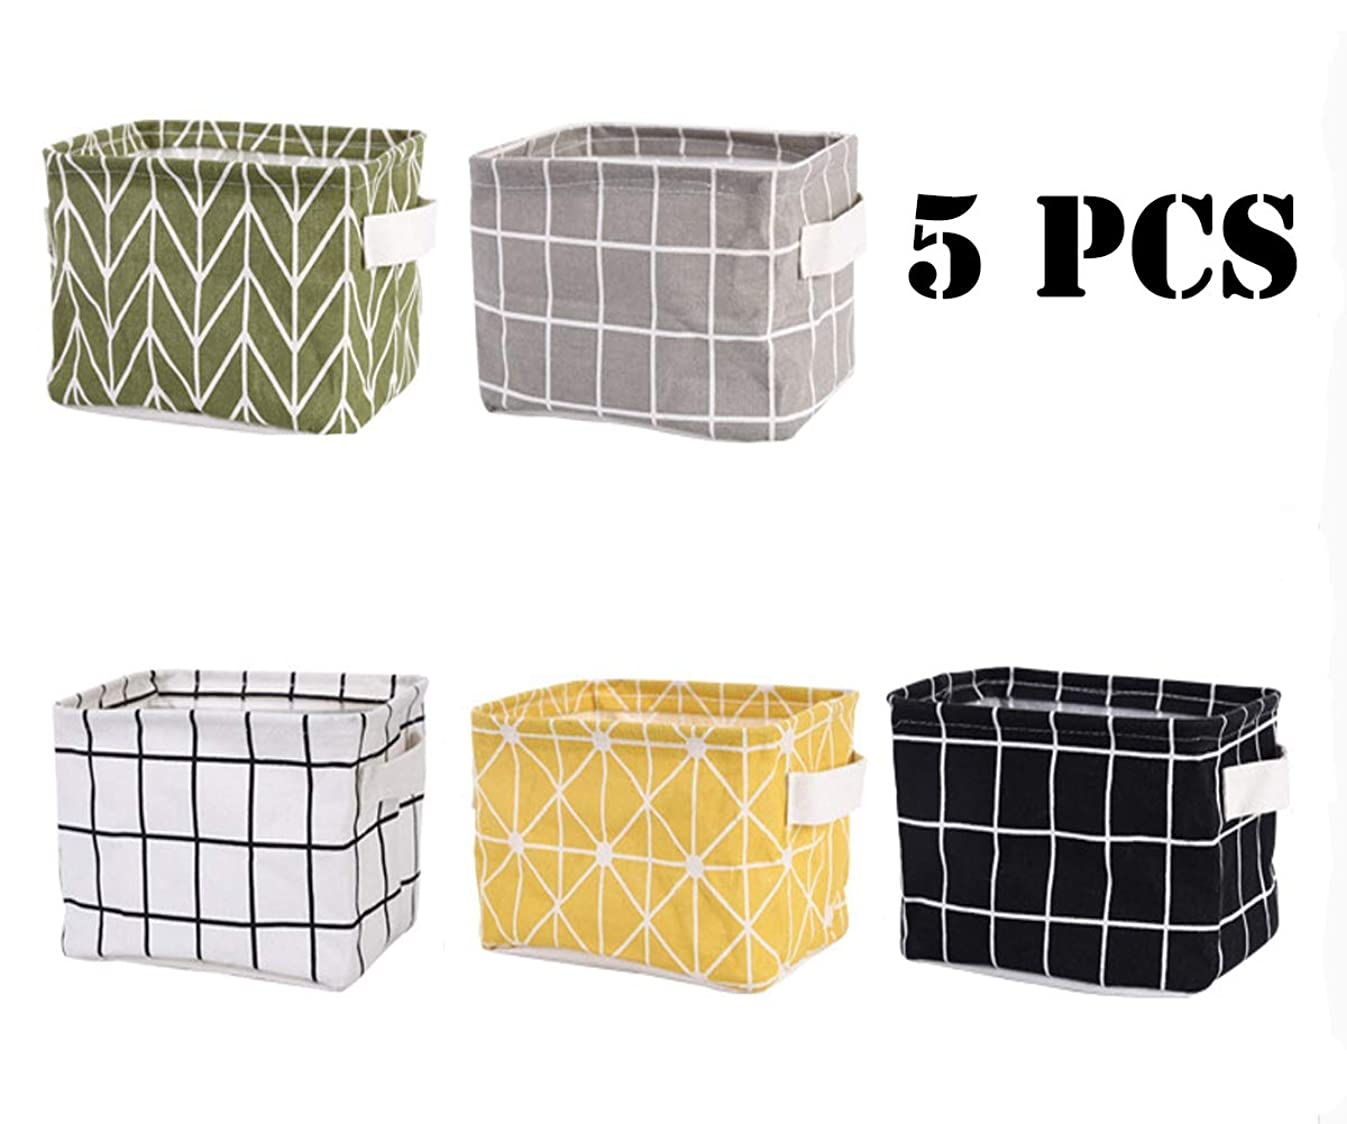 Tamicy Mini Storage Basket(Pack of 5)- Blend Storage Bins for Makeup, Book, Baby Toy,8x6x5.5 inch Home Decor Canvas Organizers Bag 8x6.3x5.1 inch